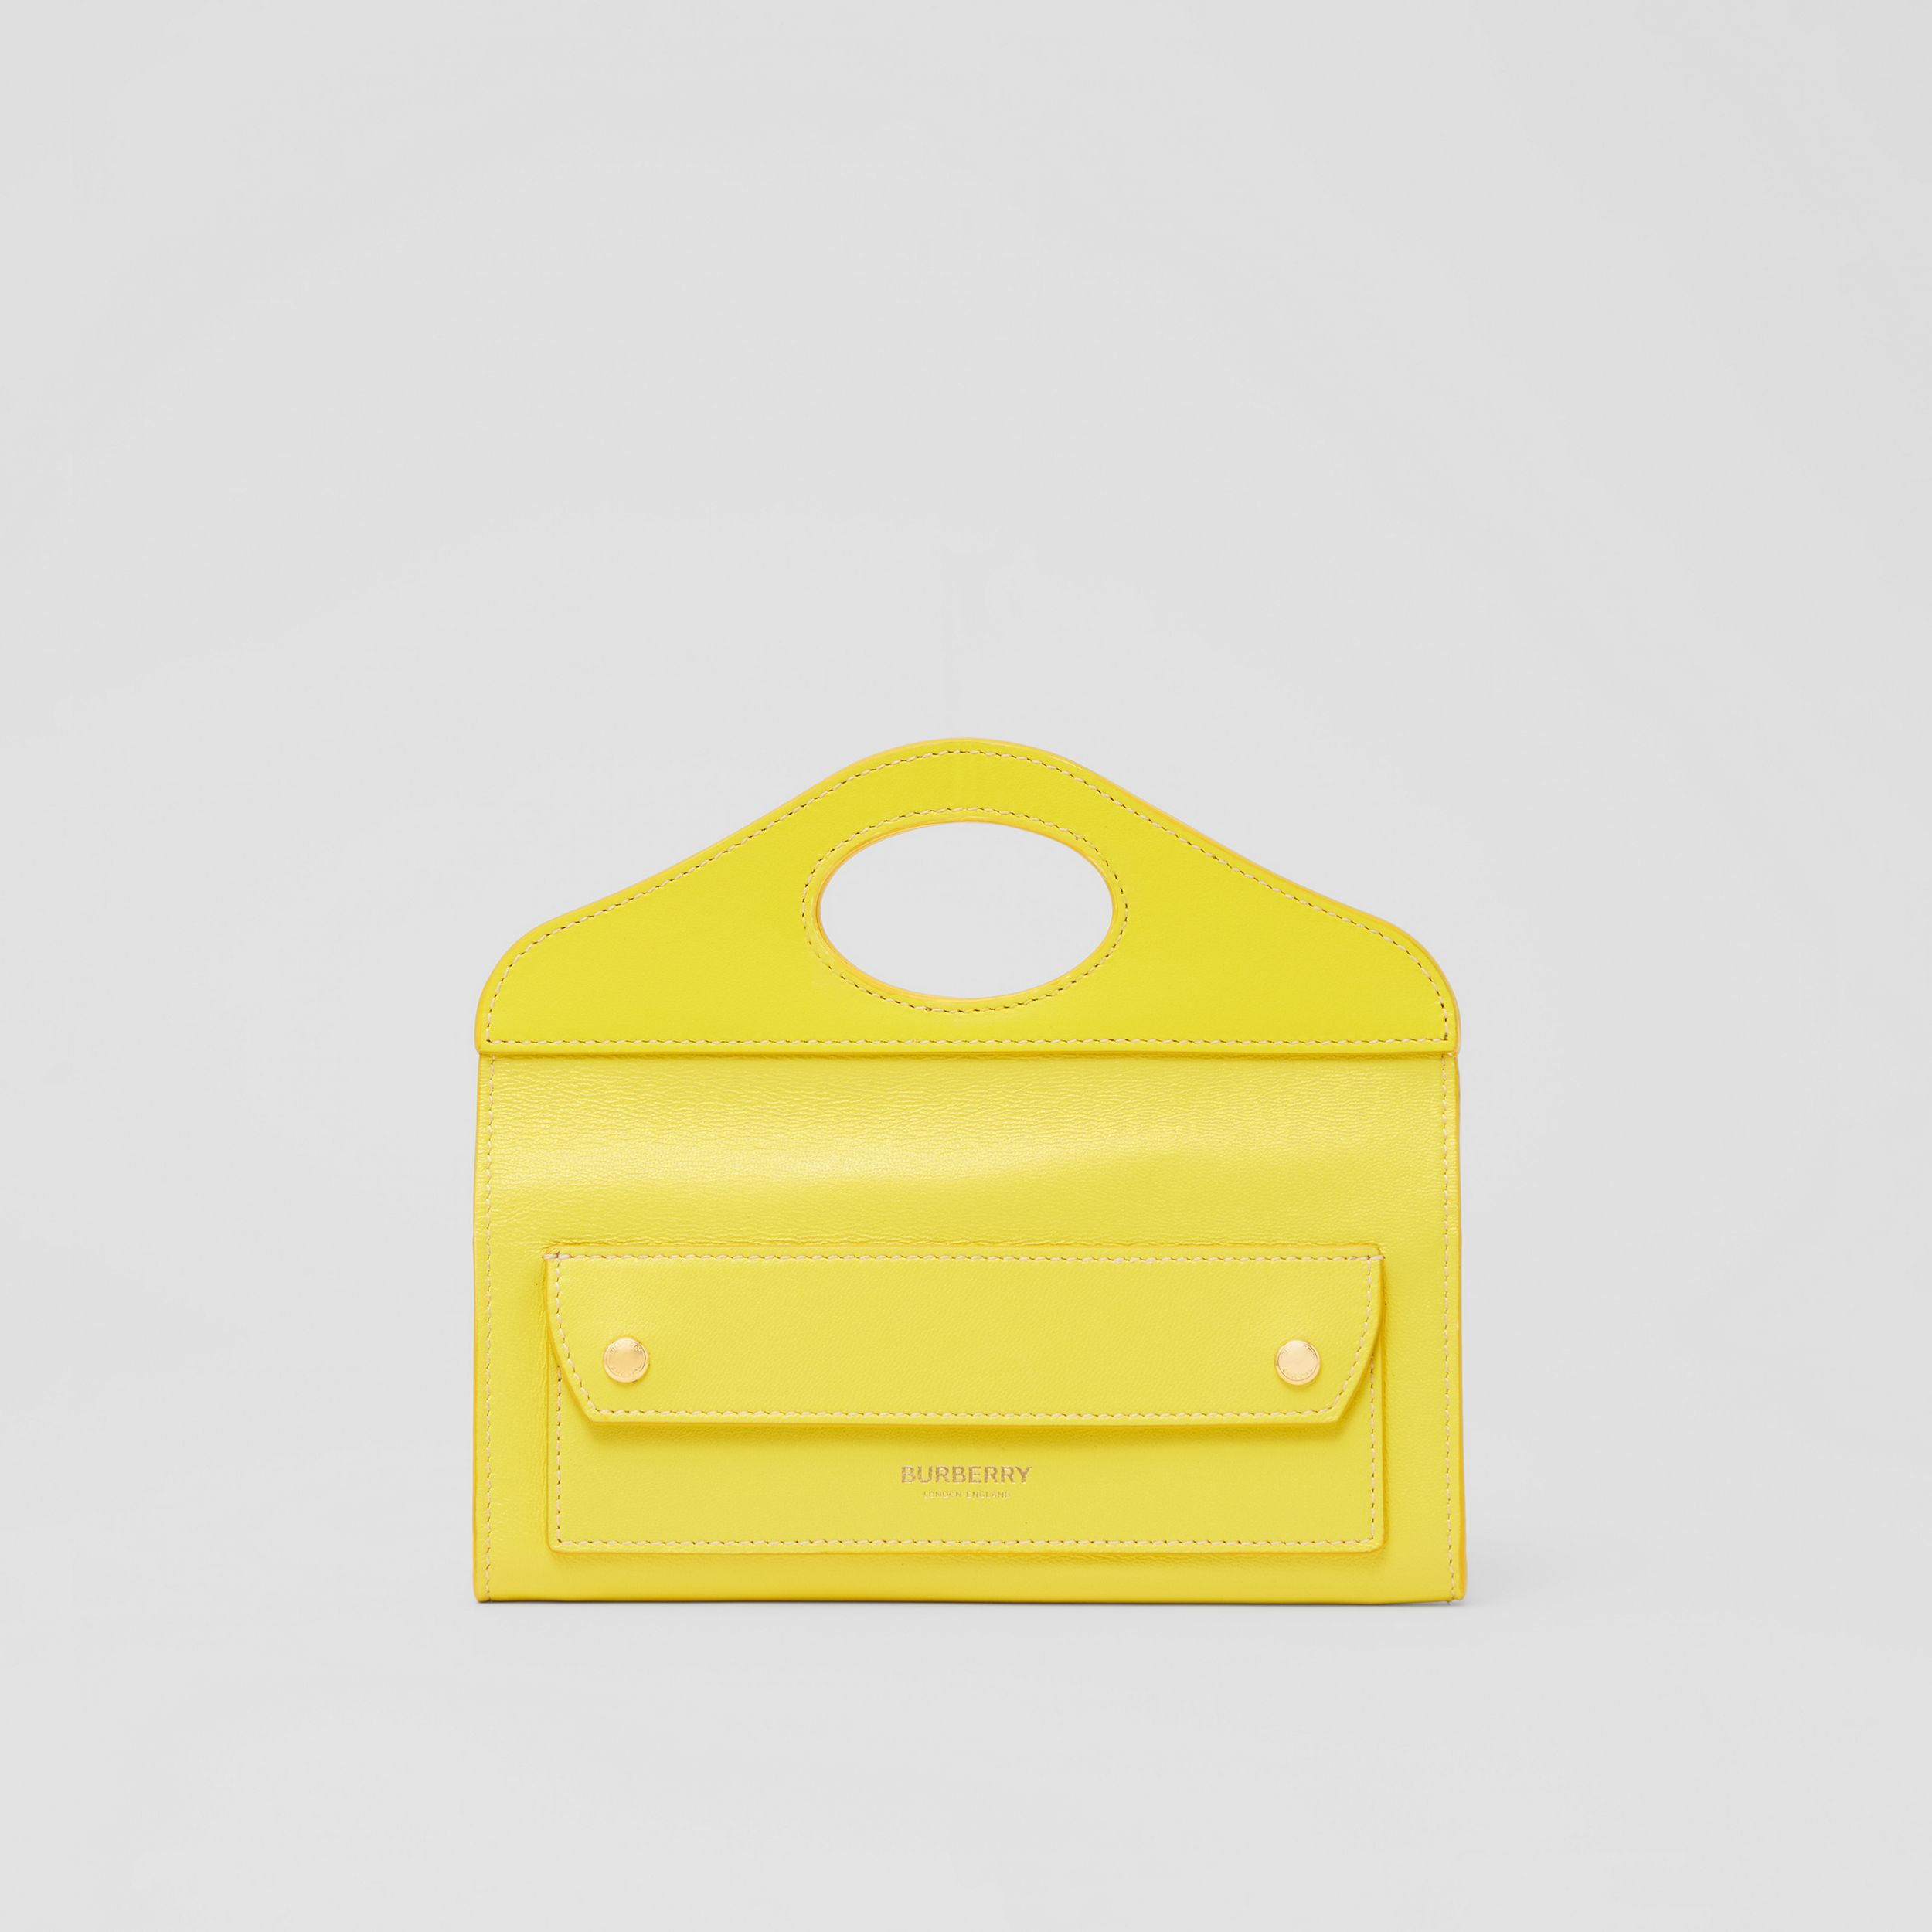 Mini Topstitched Lambskin Pocket Clutch in Marigold Yellow - Women | Burberry Hong Kong S.A.R. - 1